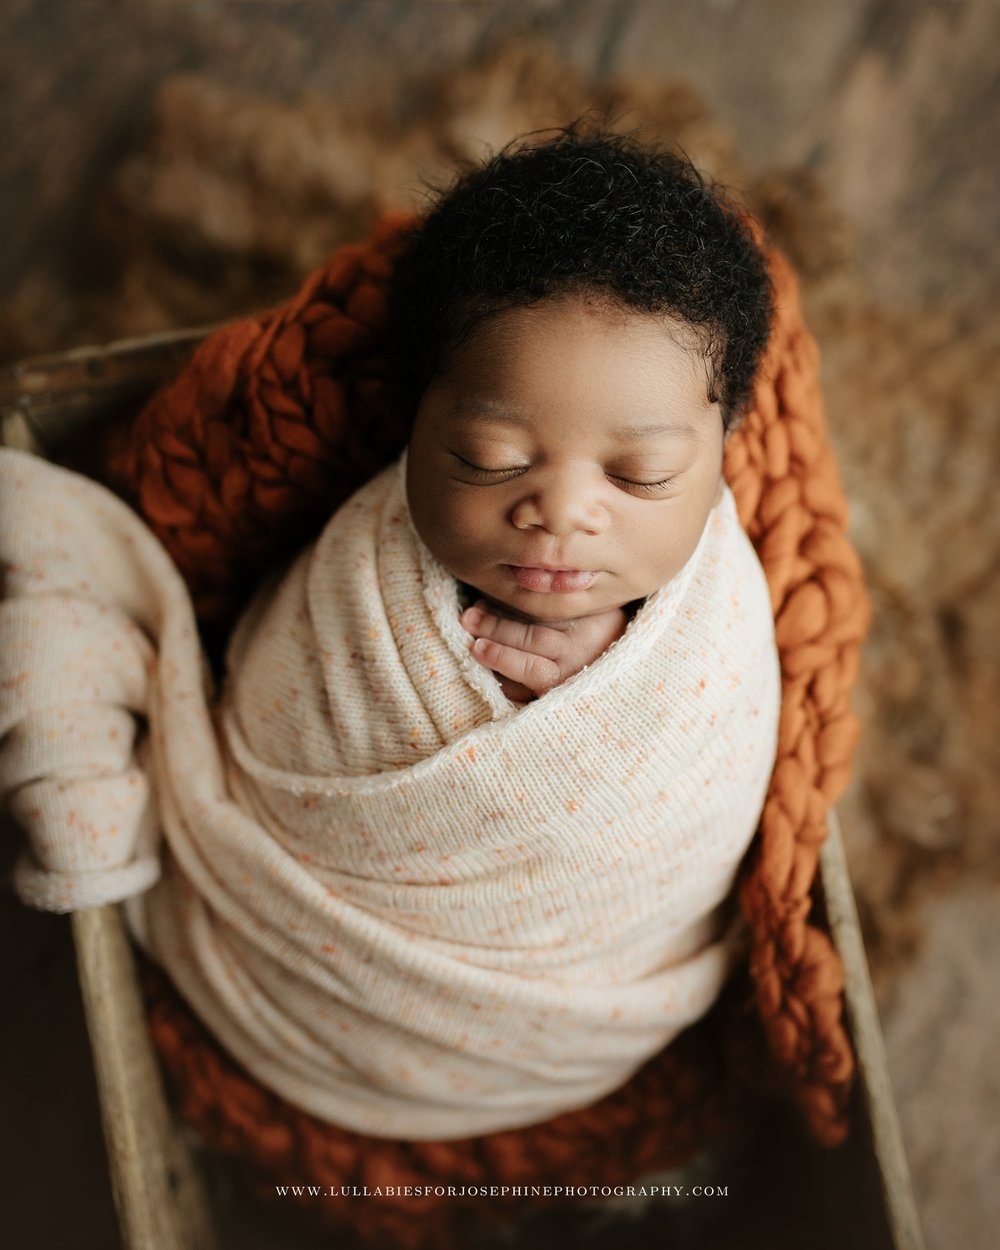 African american newborn baby wrapped with cream fabric inside a crate